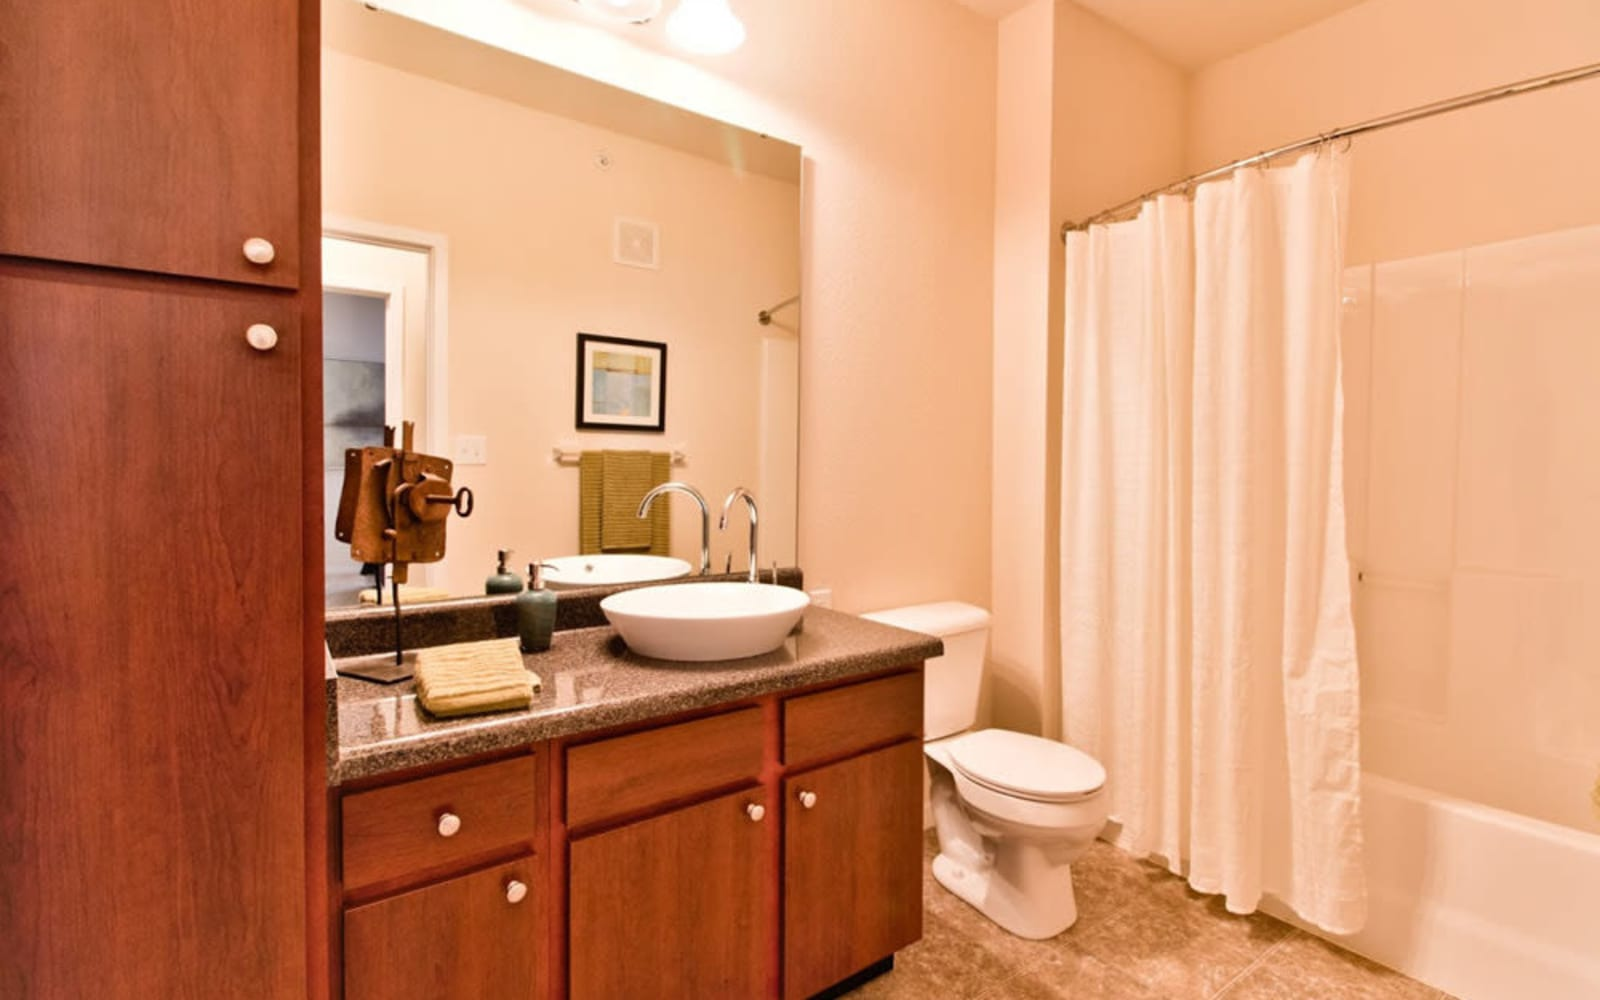 Bathrooms with plenty of cabinets at Aventura at Mid Rivers in Saint Charles, Missouri.